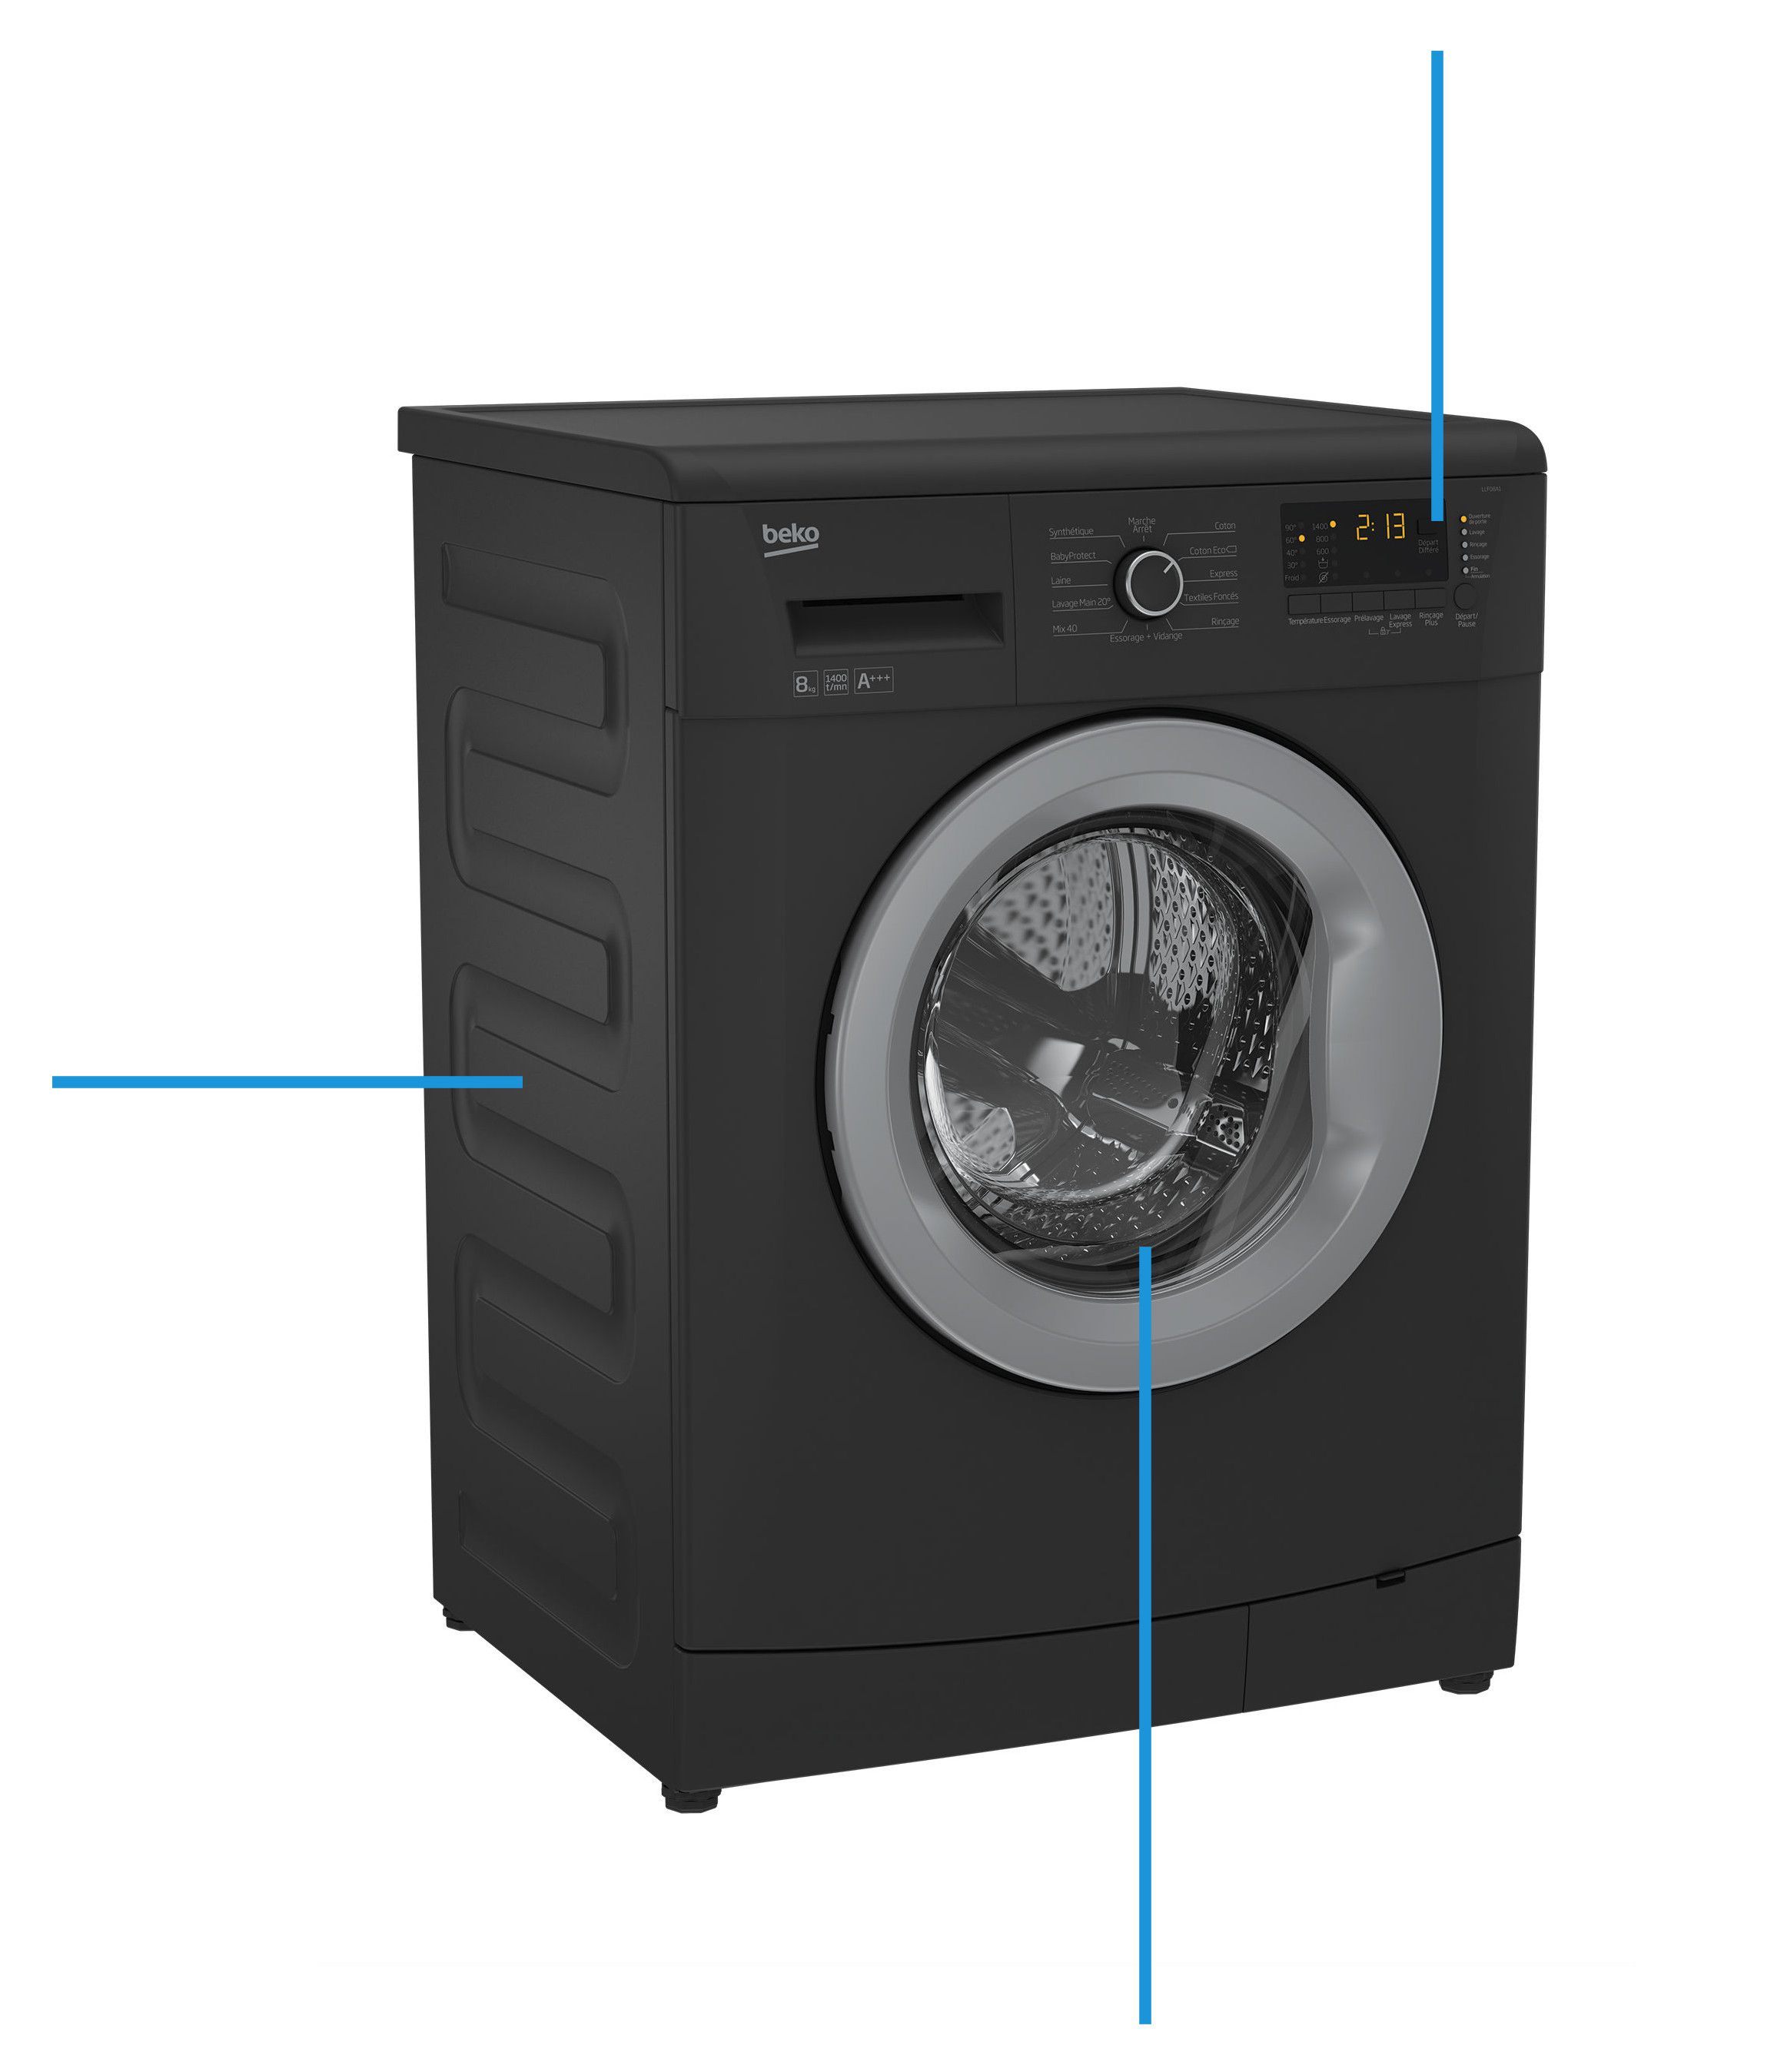 beko llf08a1 lave linge frontal 8kg 1400 tours a achat vente lave linge cdiscount. Black Bedroom Furniture Sets. Home Design Ideas